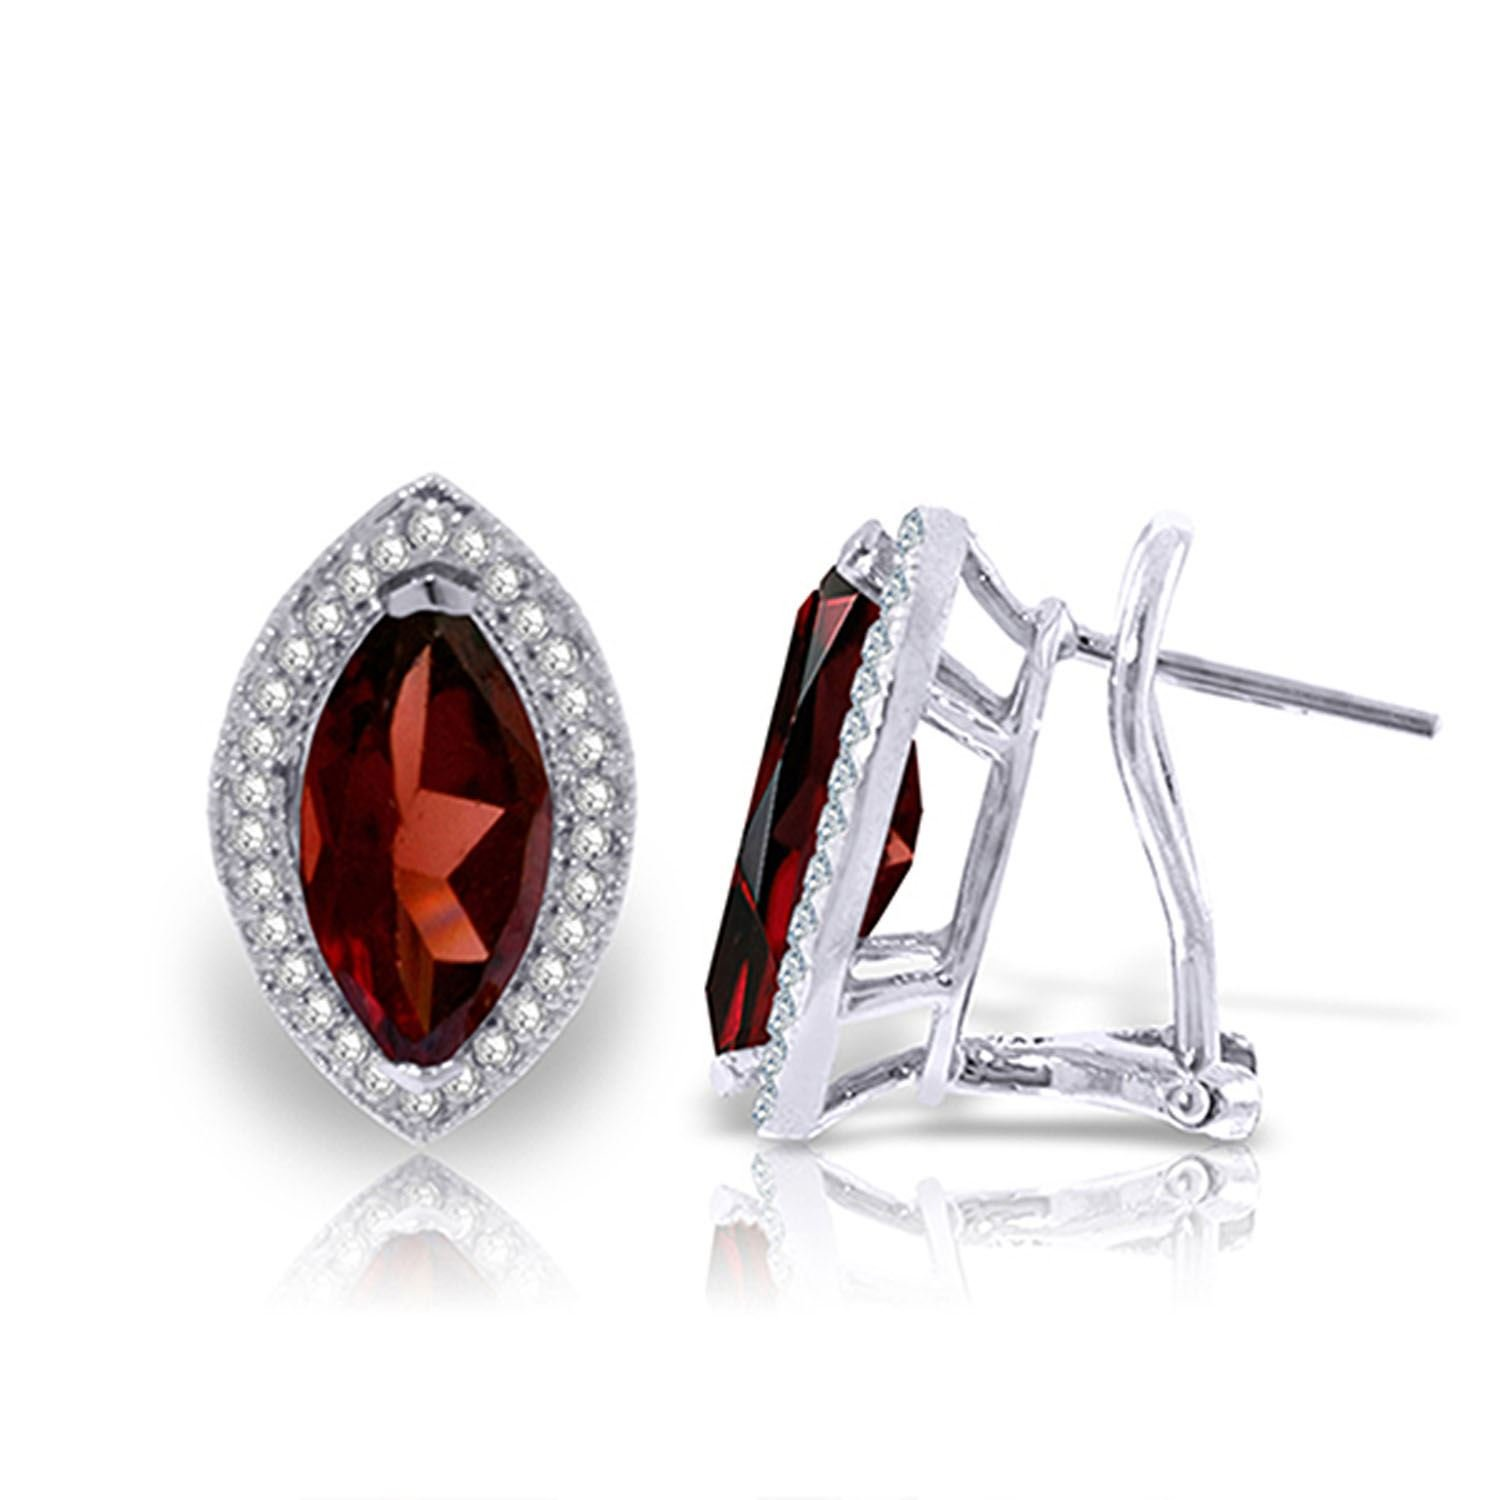 ALARRI 4.3 Carat 14K Solid White Gold Love Cure Garnet Diamond Earrings